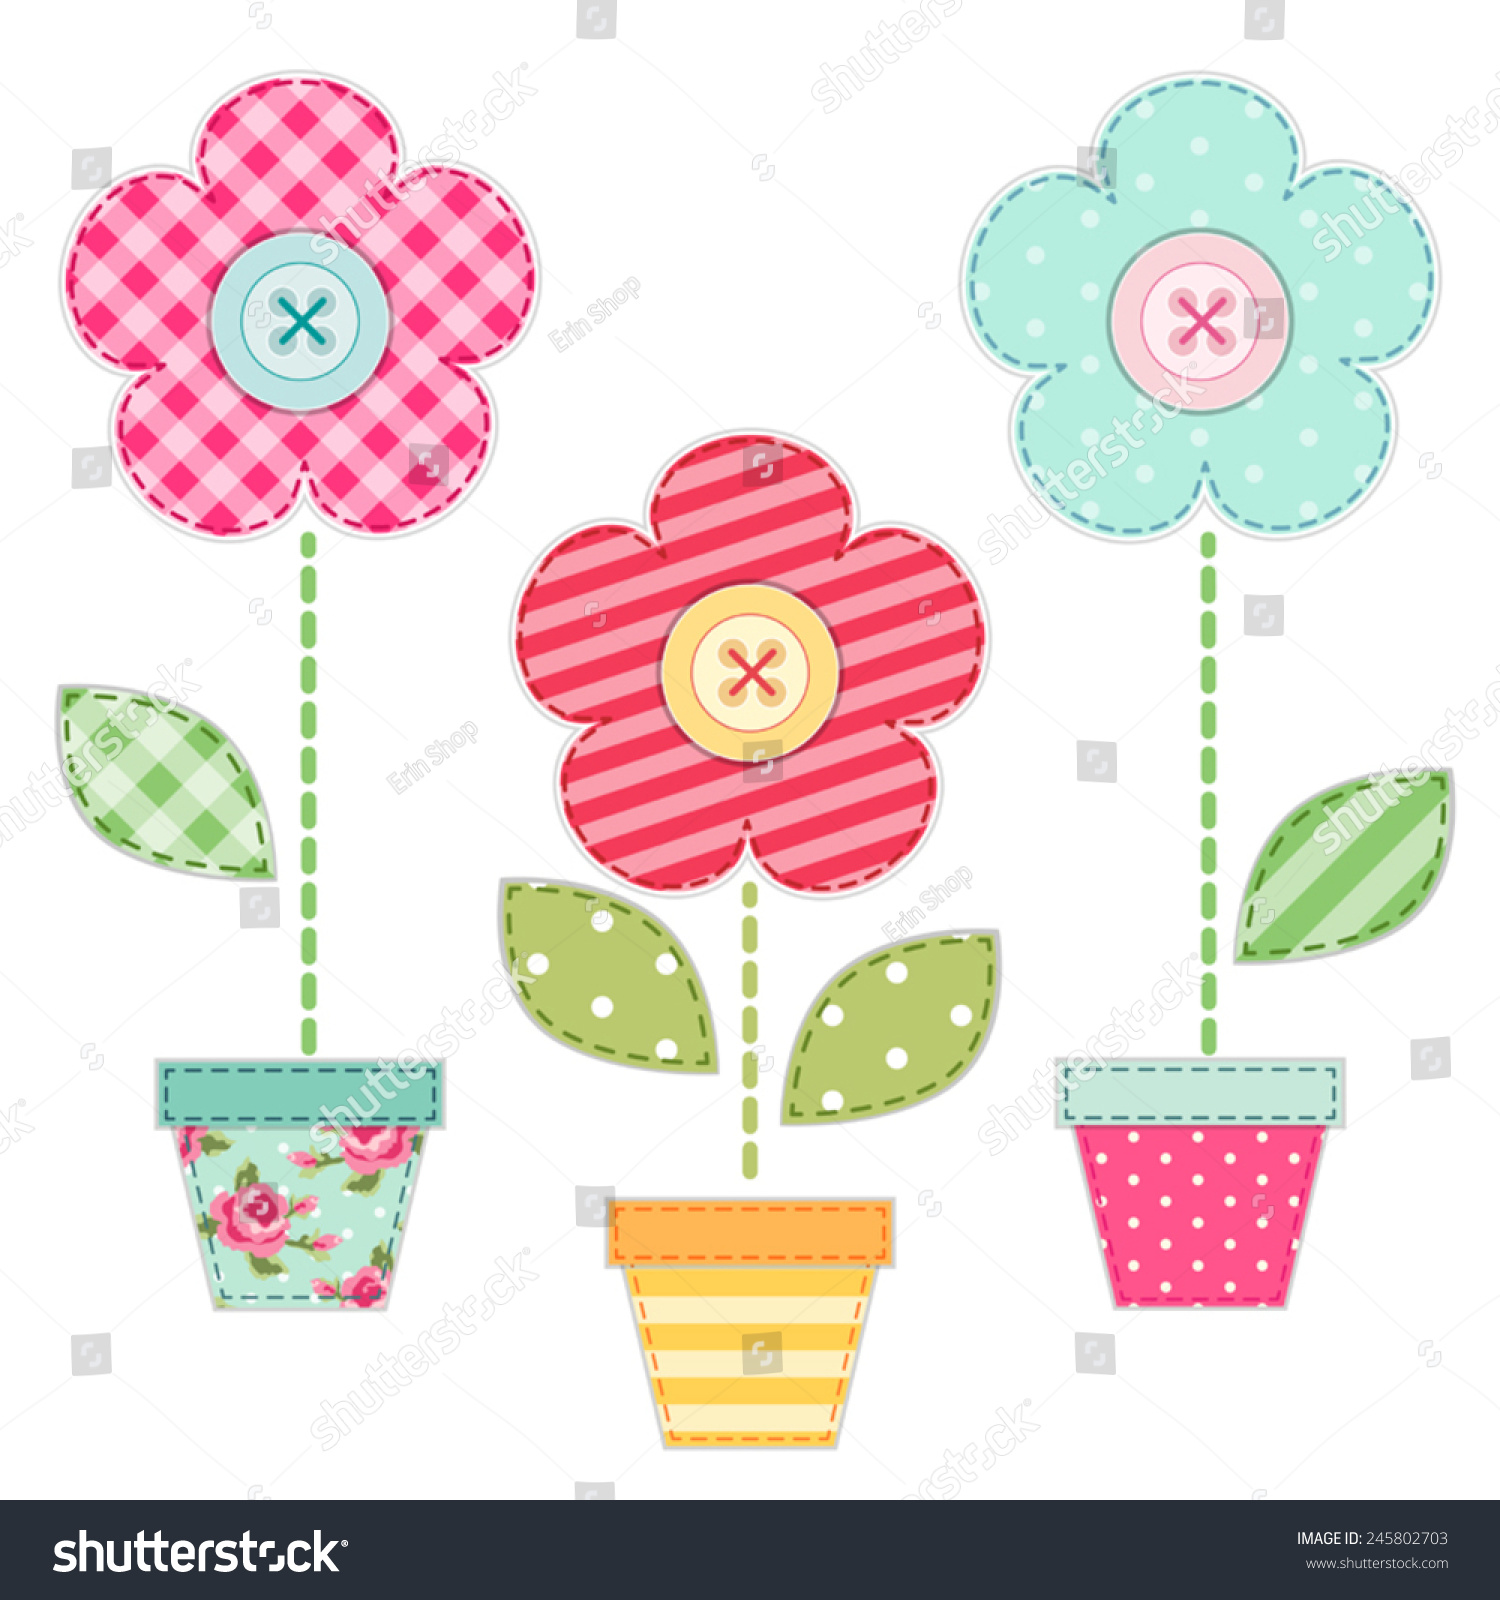 Cute spring flower - Cute Retro Spring Flowers In Pots As Fabric Patch Applique